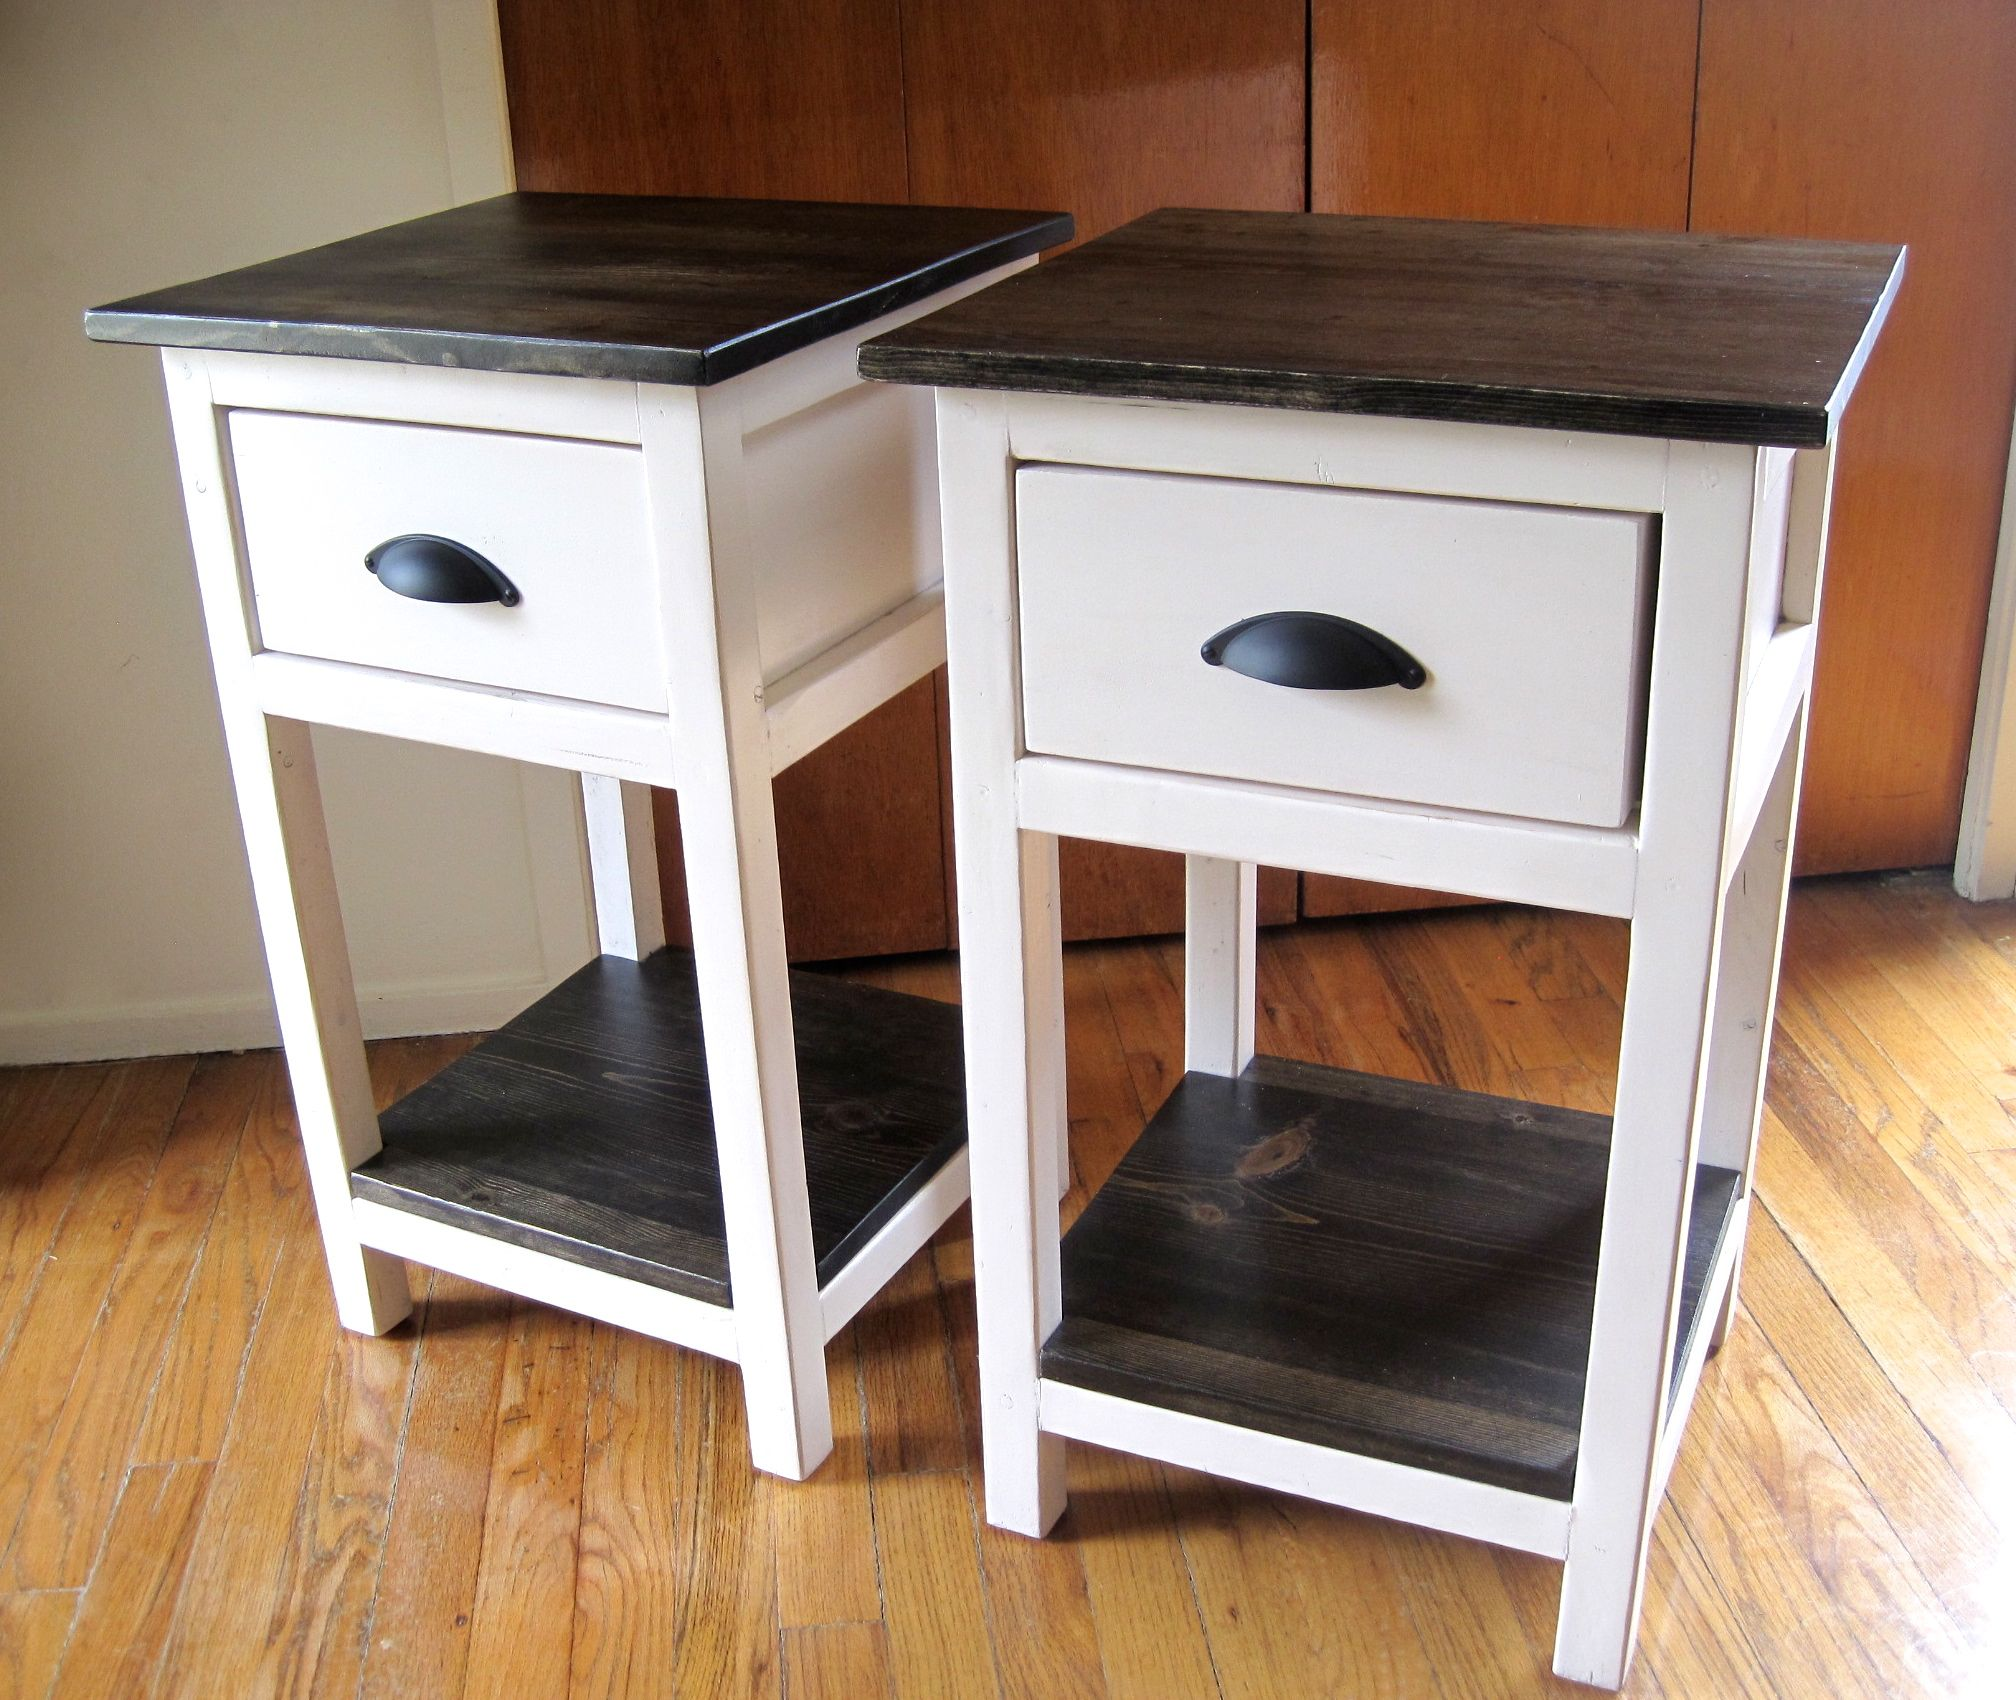 Ana white build a mini farmhouse bedside table plans for Table design for project